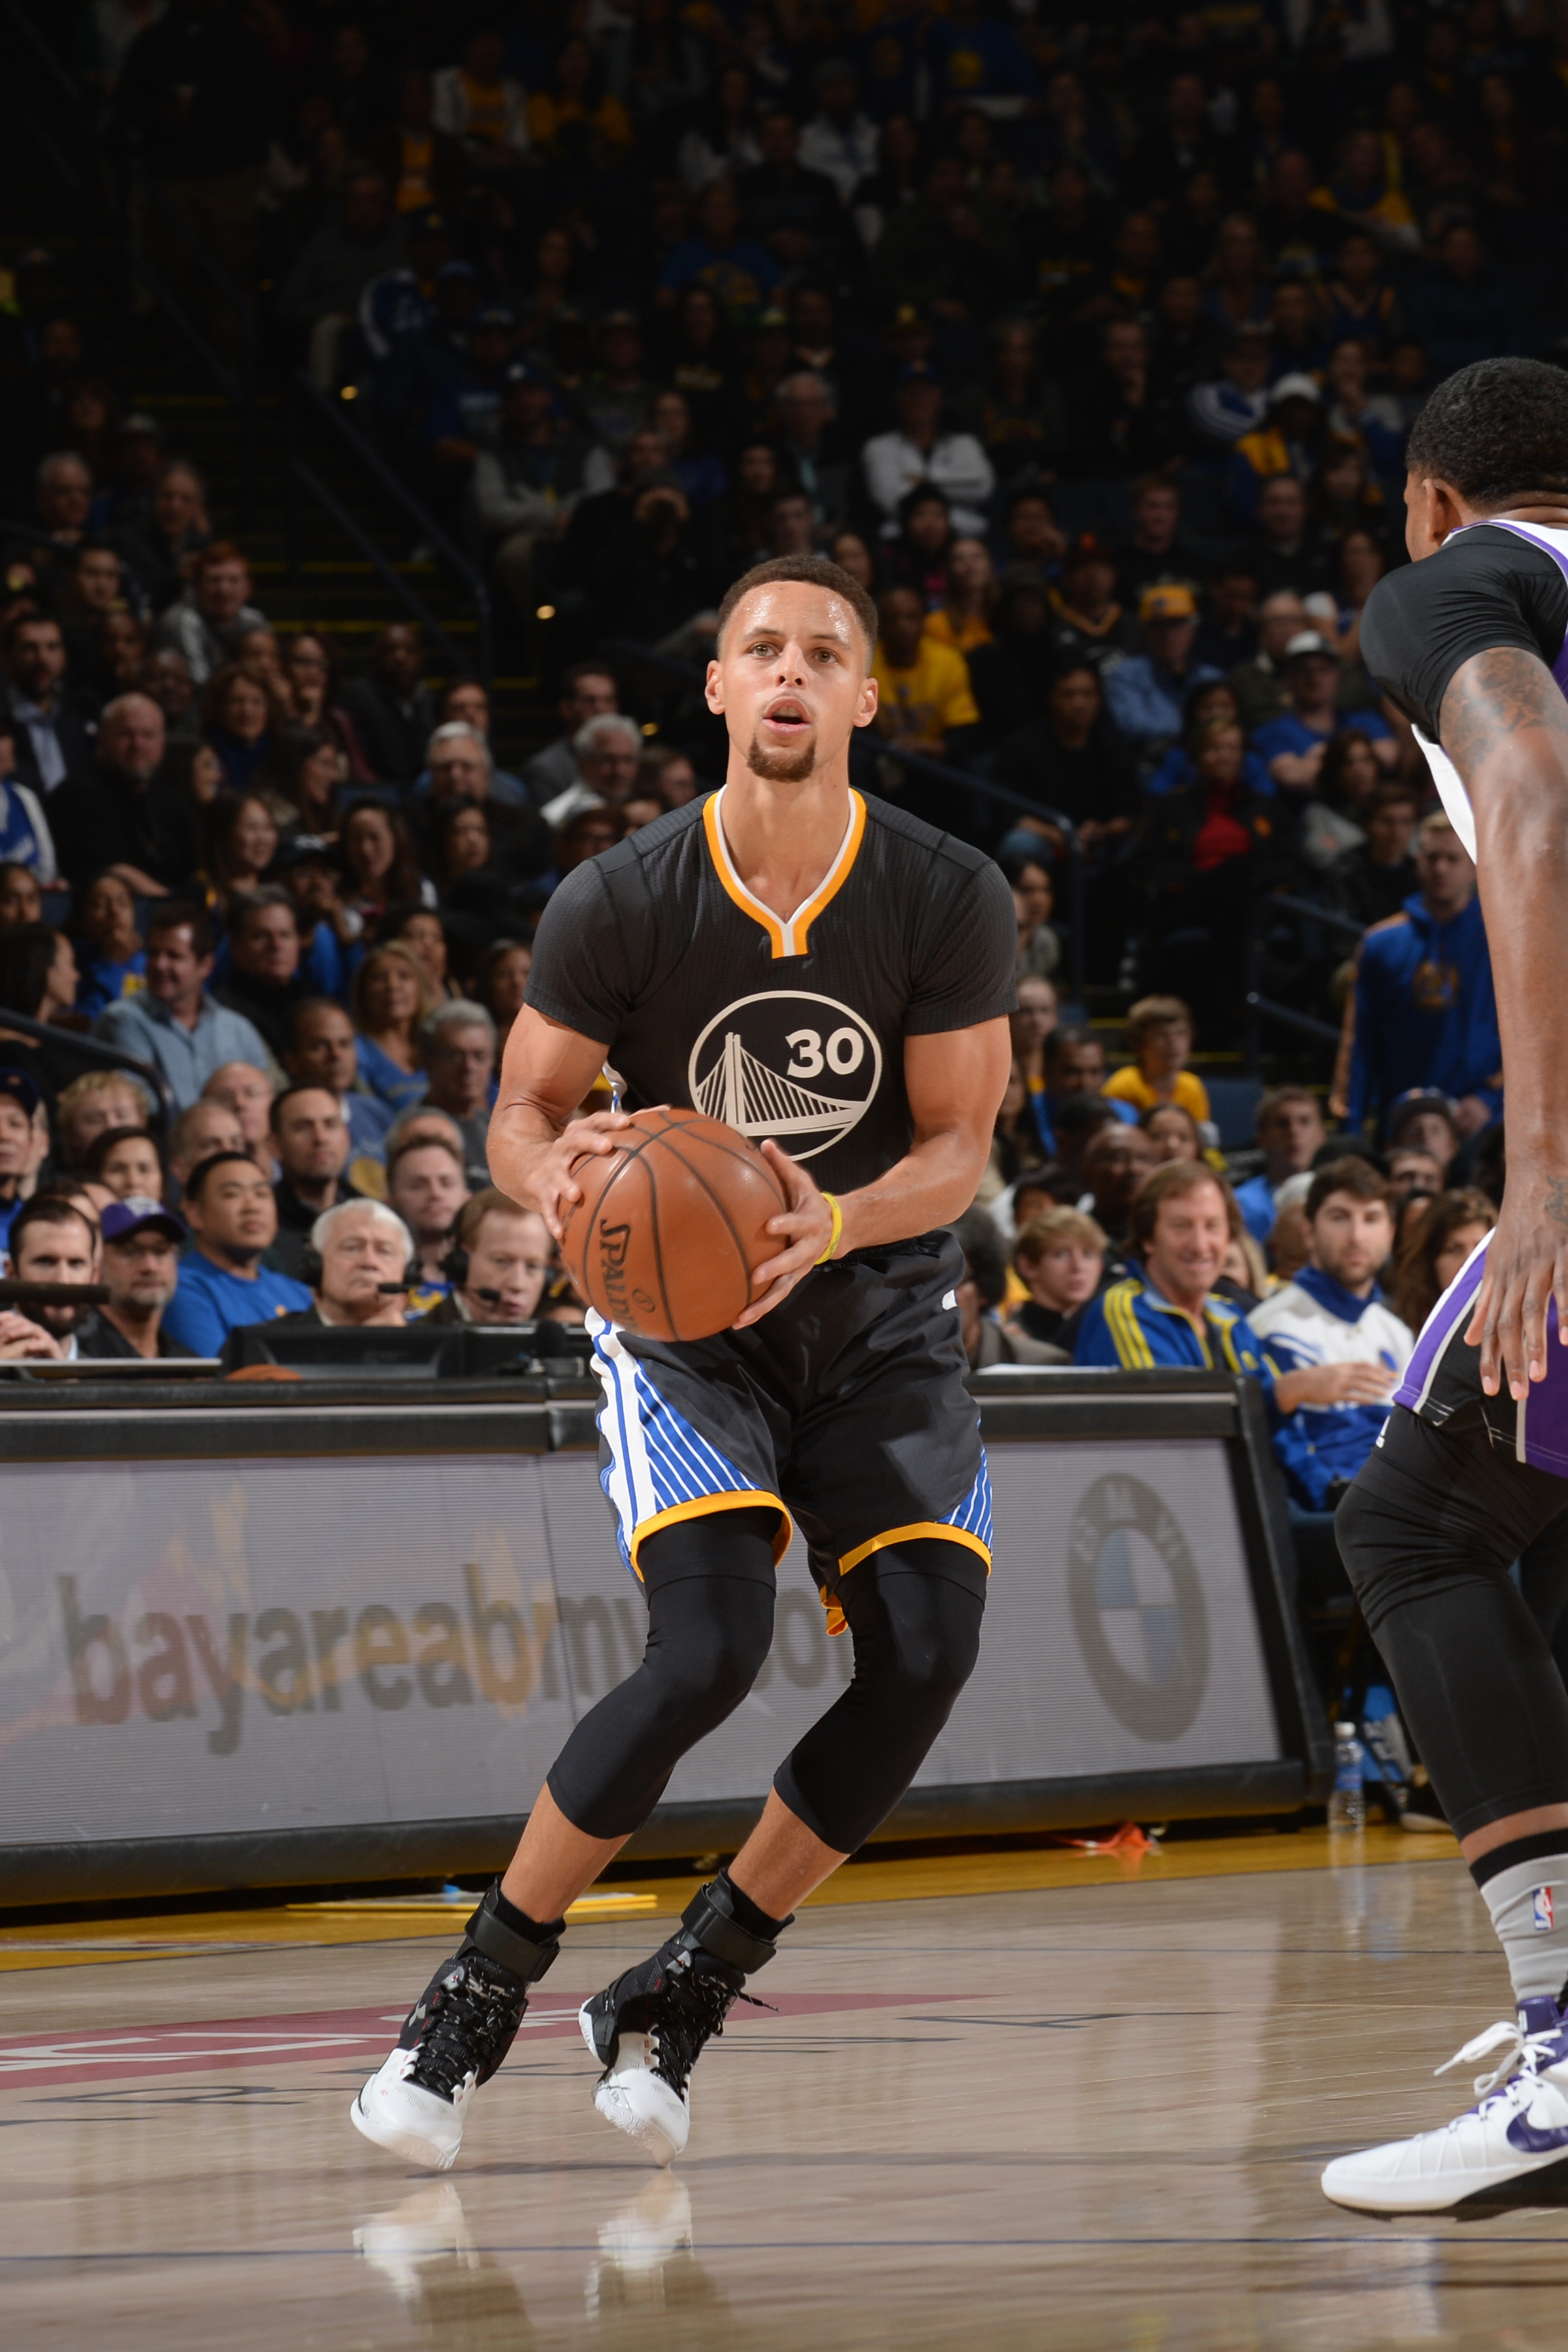 OAKLAND, CA - NOVEMBER 28:  Stephen Curry #30 of the Golden State Warriors handles the ball against the Sacramento Kings on November 28, 2015 at ORACLE Arena in Oakland, California. (Photo by Noah Graham/NBAE via Getty Images)